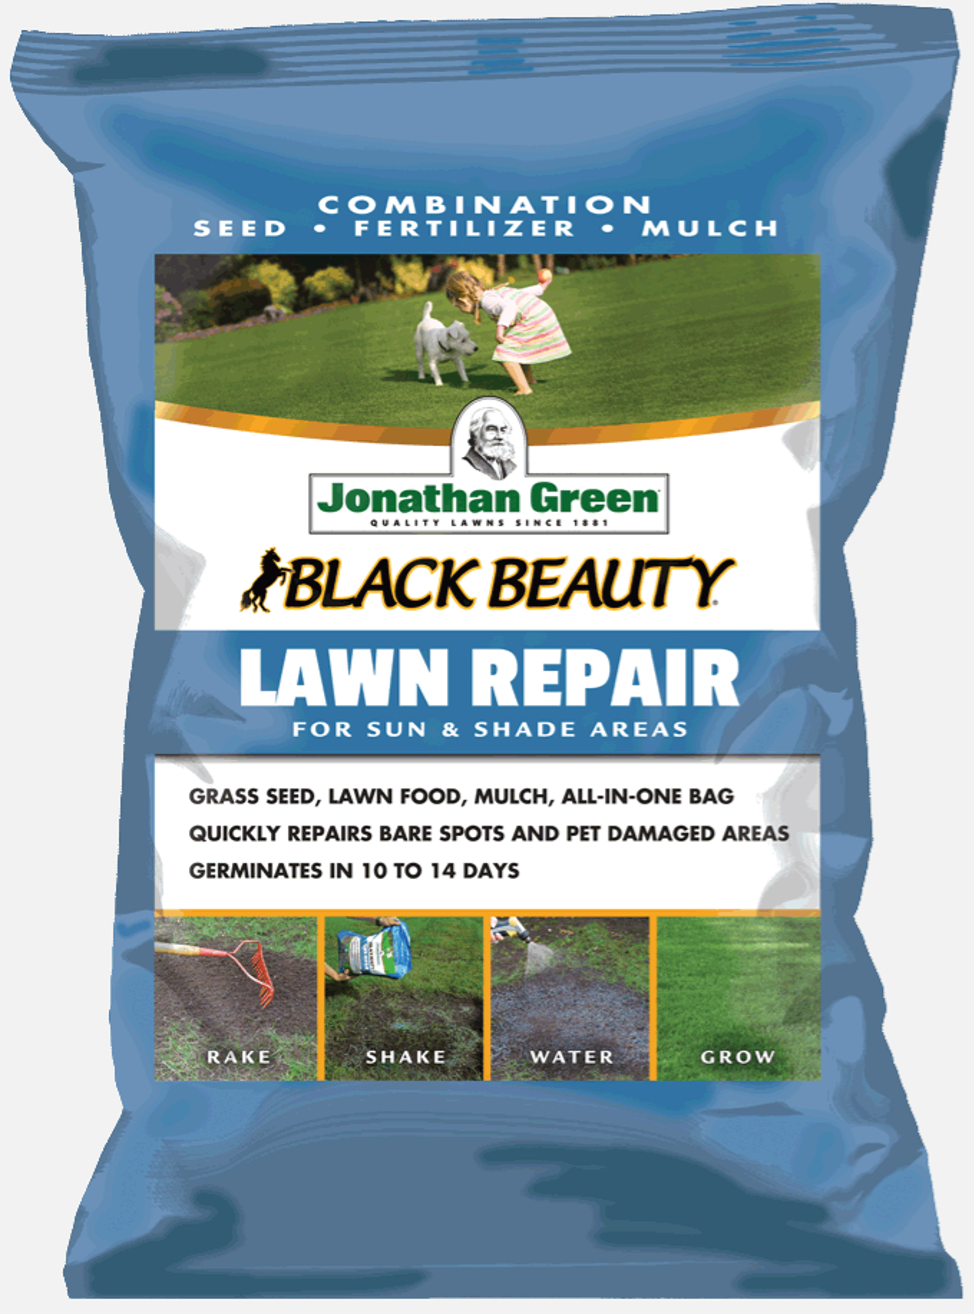 Jonathan Green Lawn Repair